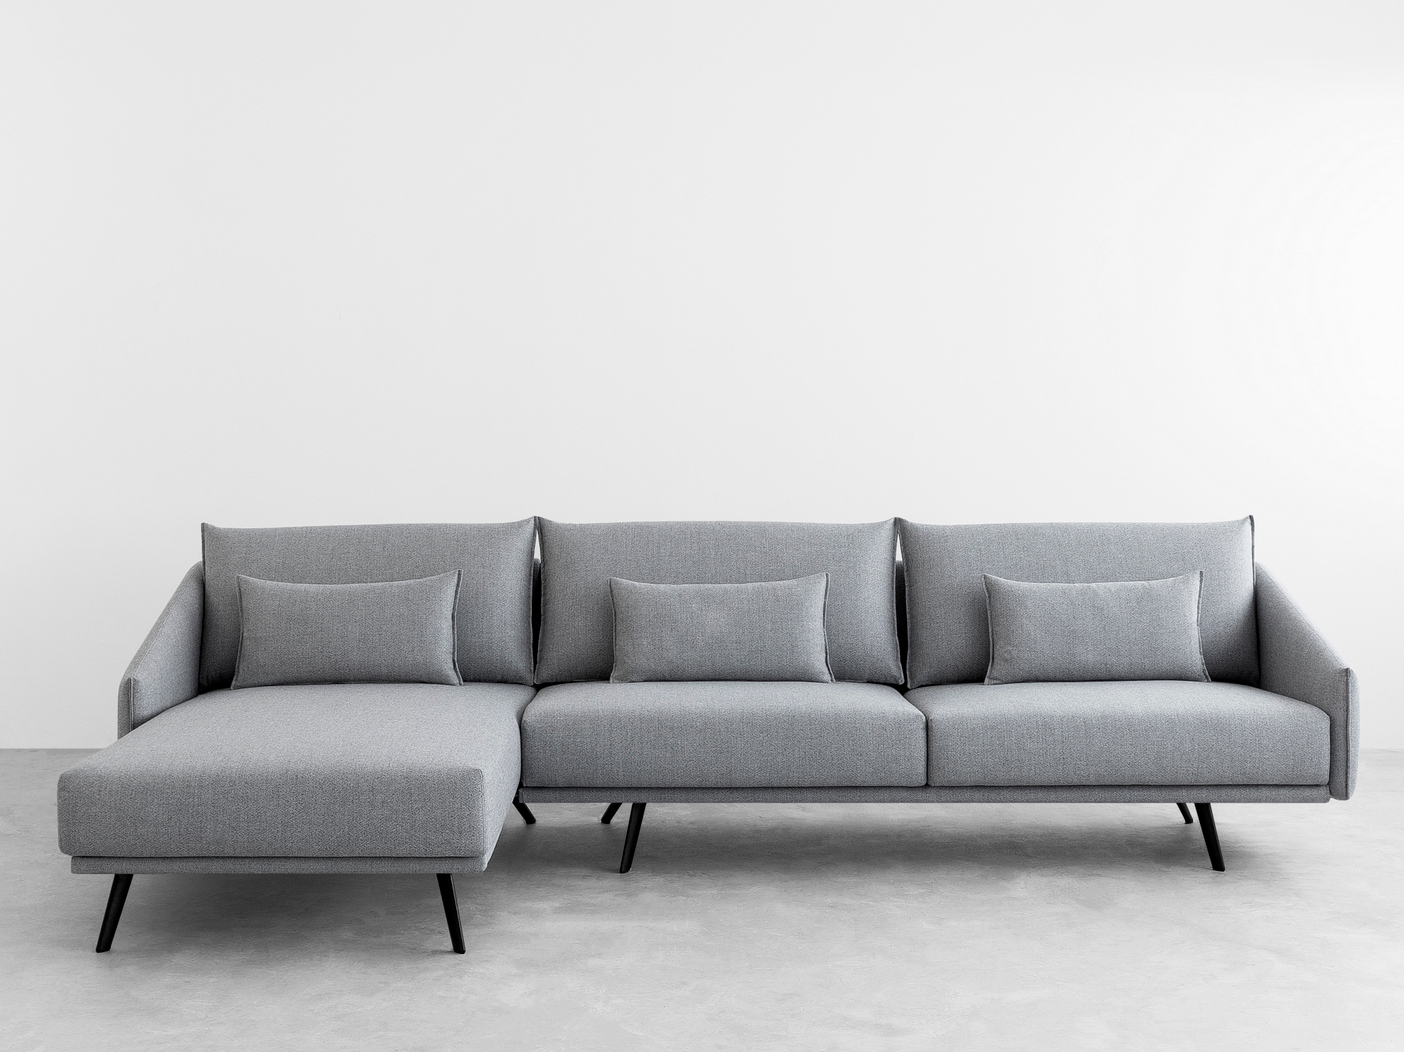 Costura sofa with chaise longue costura collection by stua for Sofa chaise longue